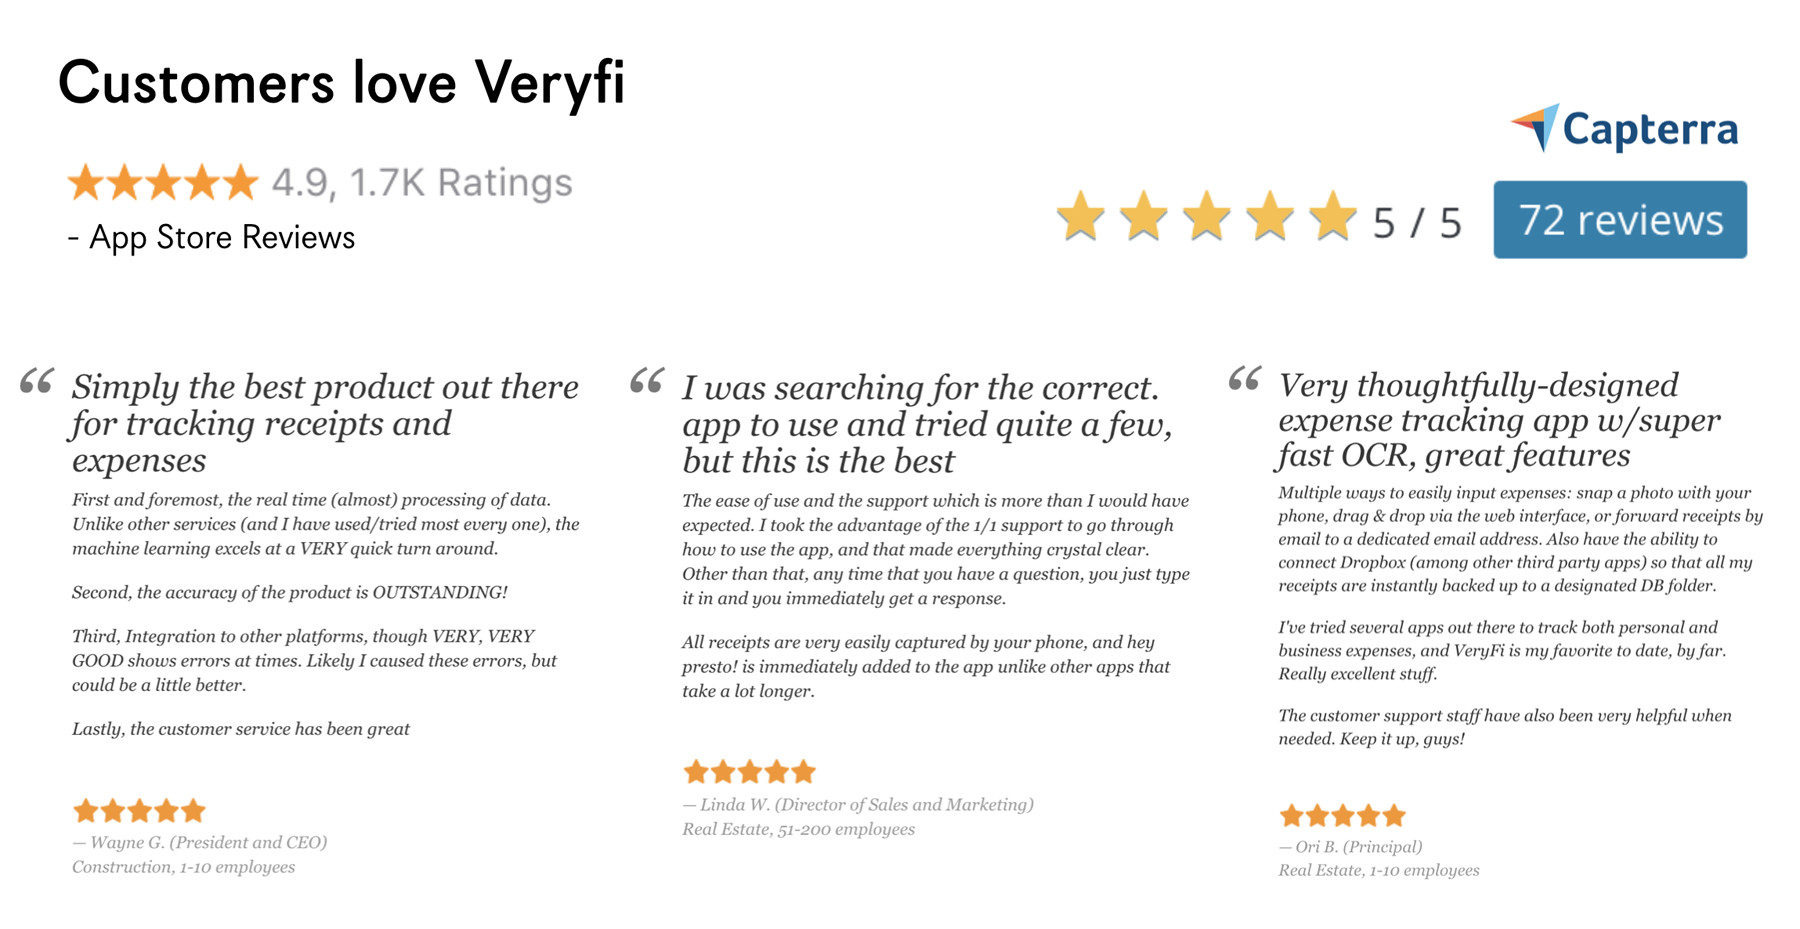 Customers Love Veryfi -- Read Veryfi's Capterra Reviews and App Store Reviews